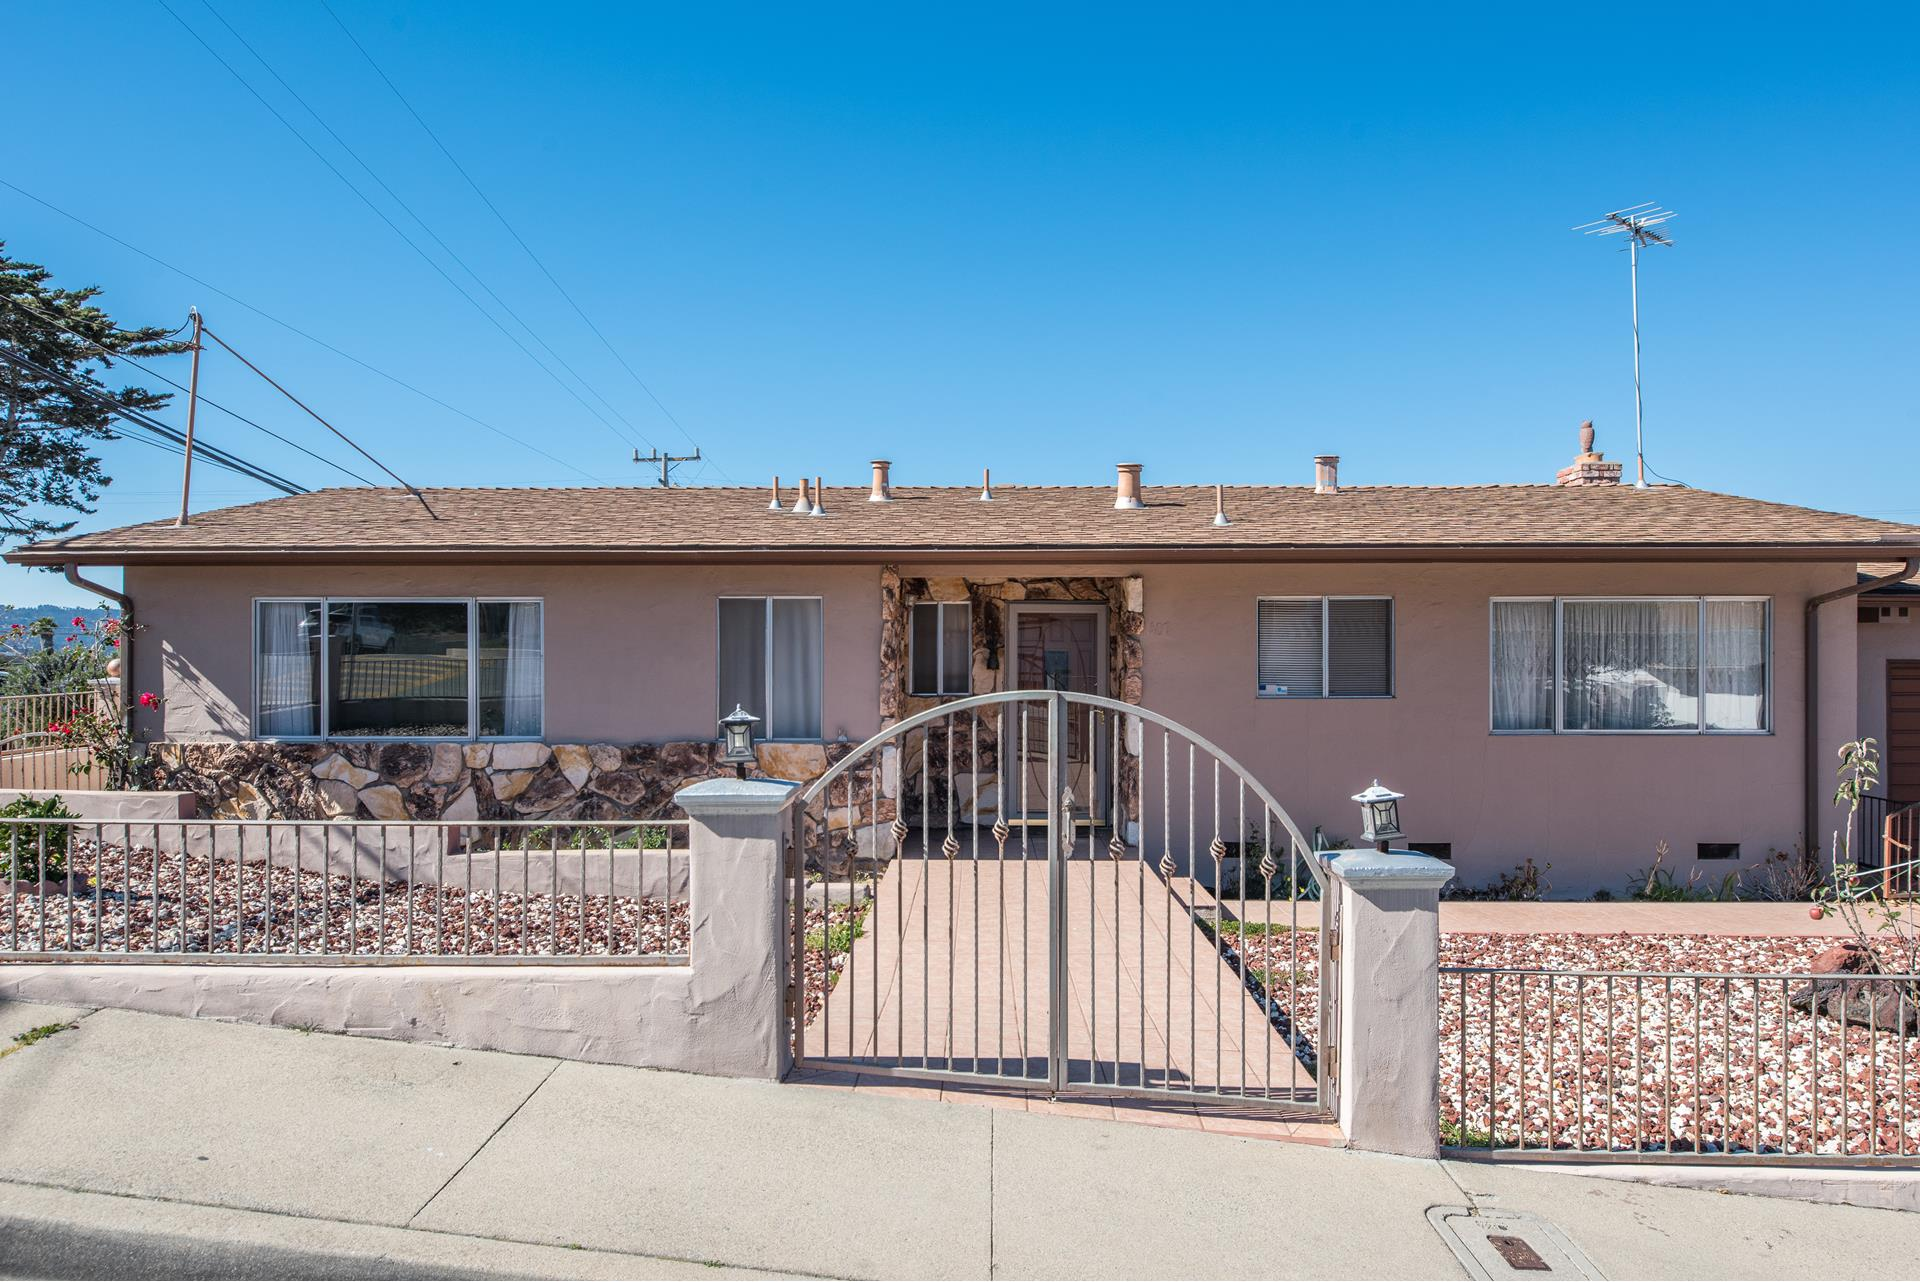 1407 Soto Street - Seaside, California